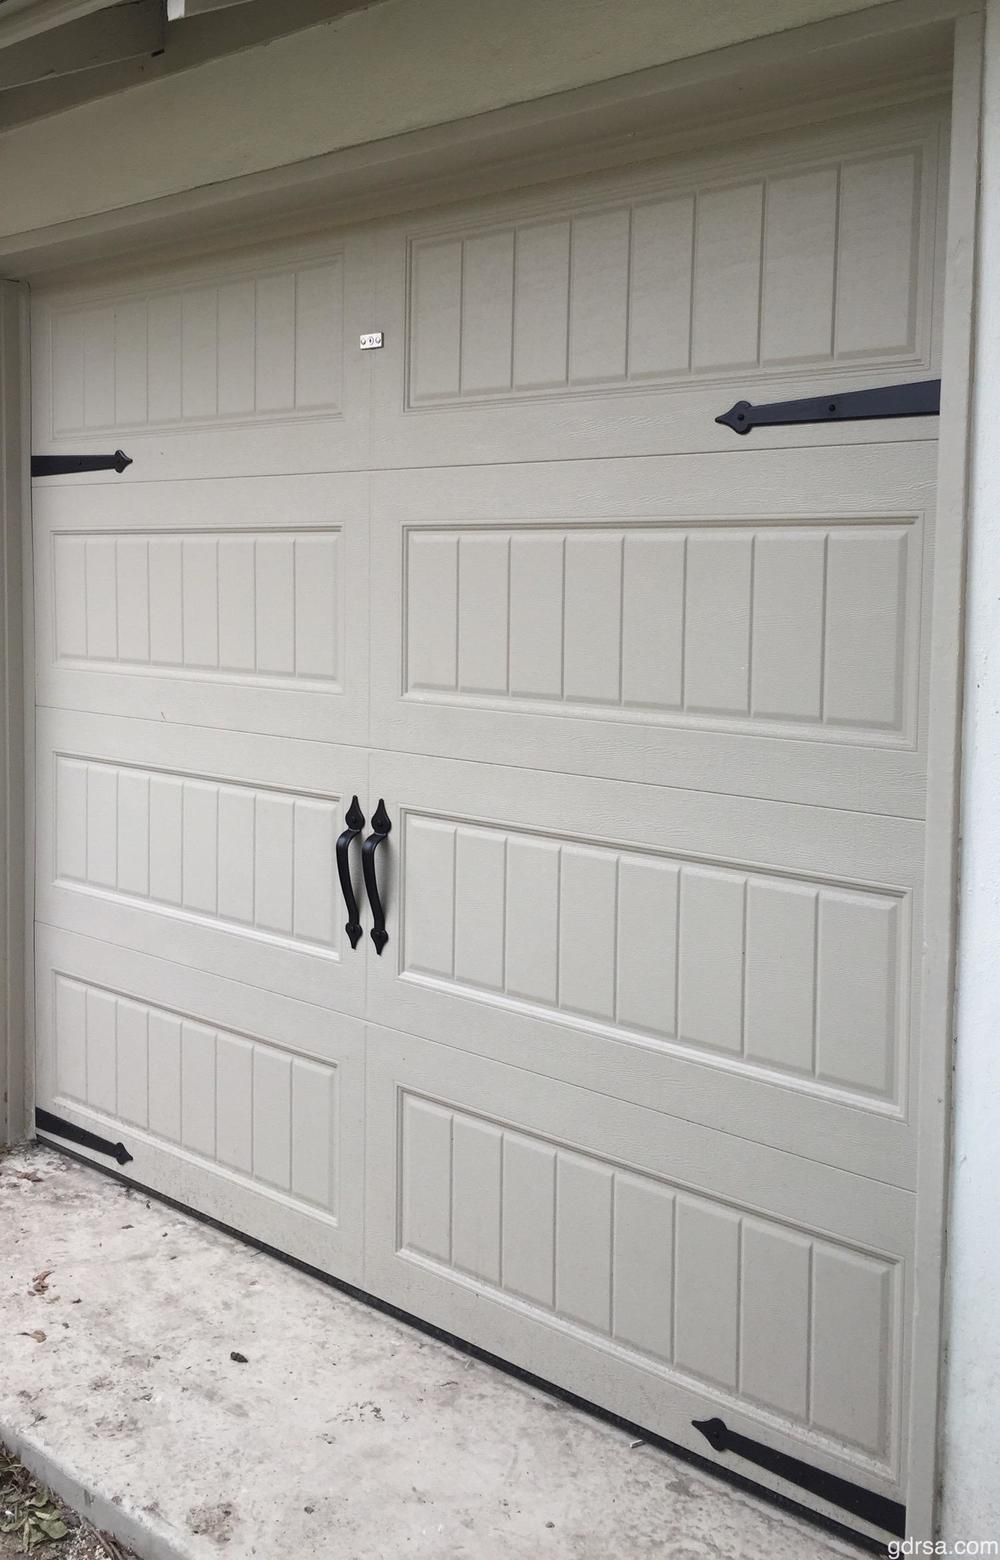 Garage Door Repair Jackson Mi Mar 2 Carriage House Decorative Magnetic Garage Door Hardware